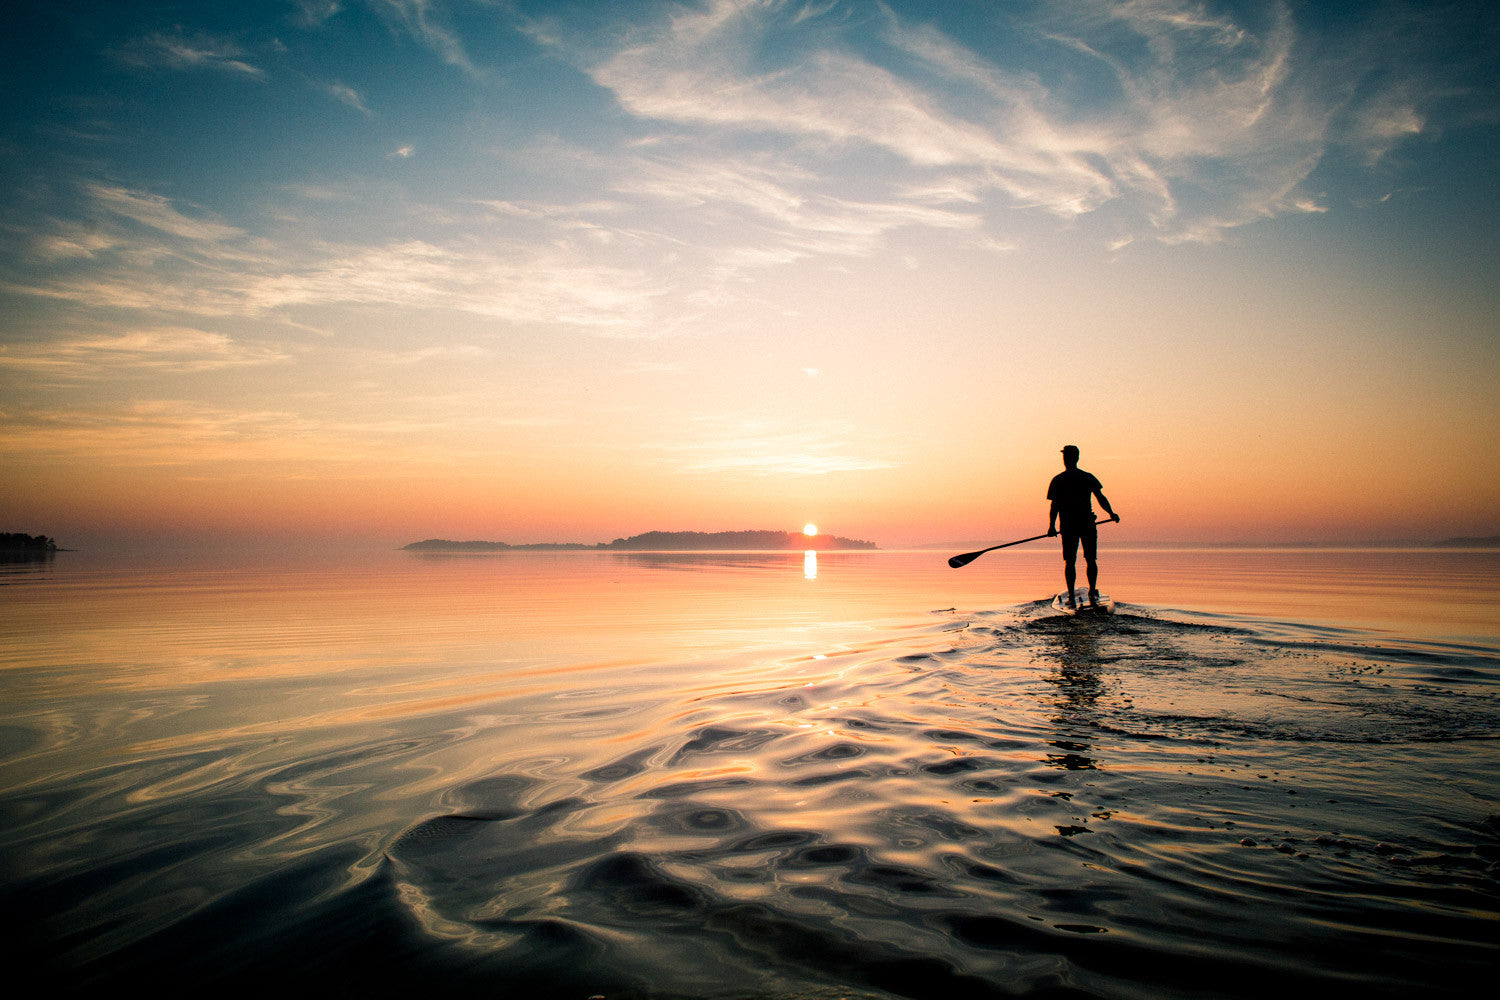 8 reasons why Finland is a SUP paradise and worthy of your next paddling adventure